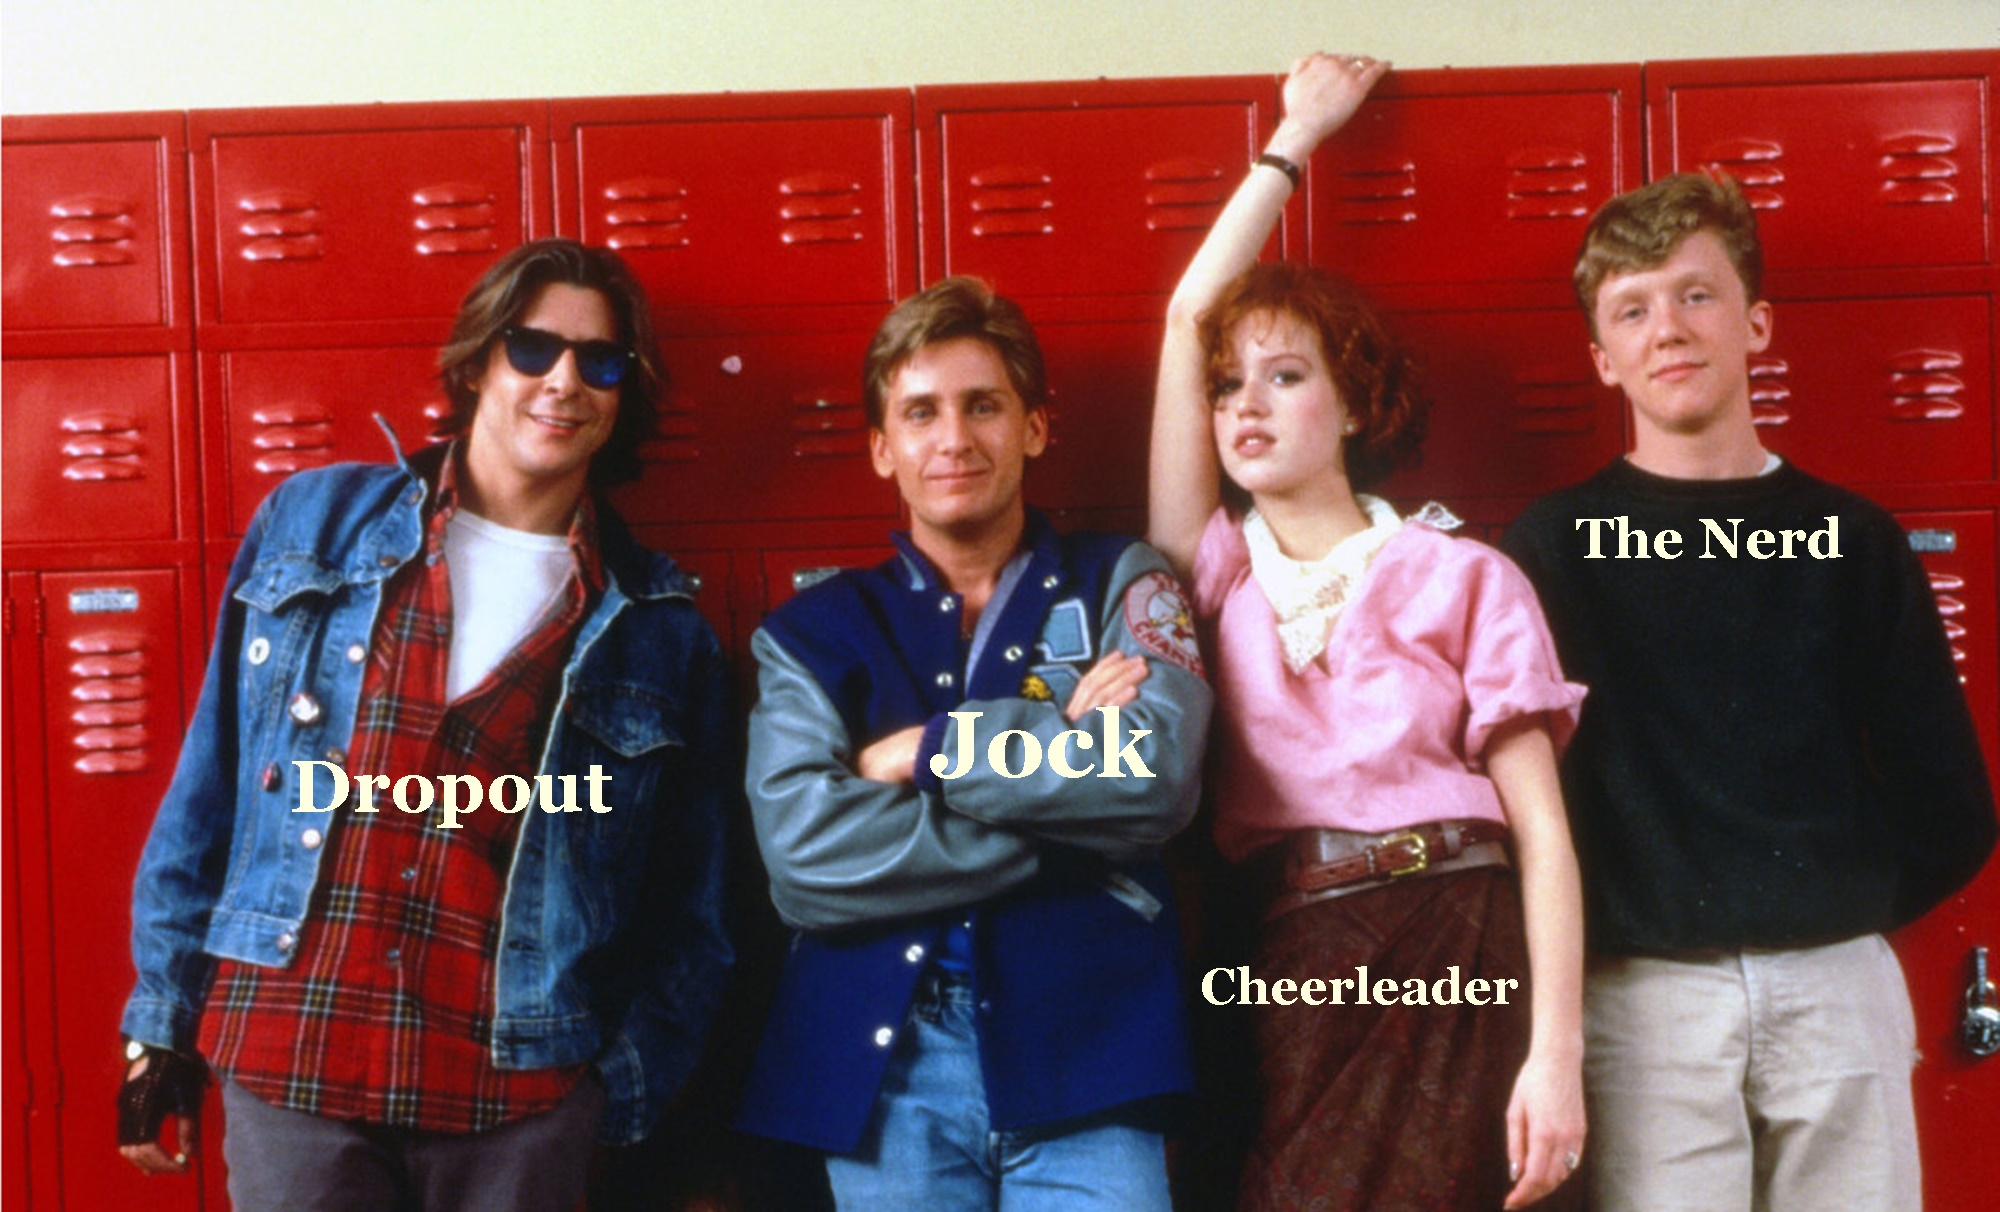 Are You The Nerd, The Jock, The Cheerleader, Or The High